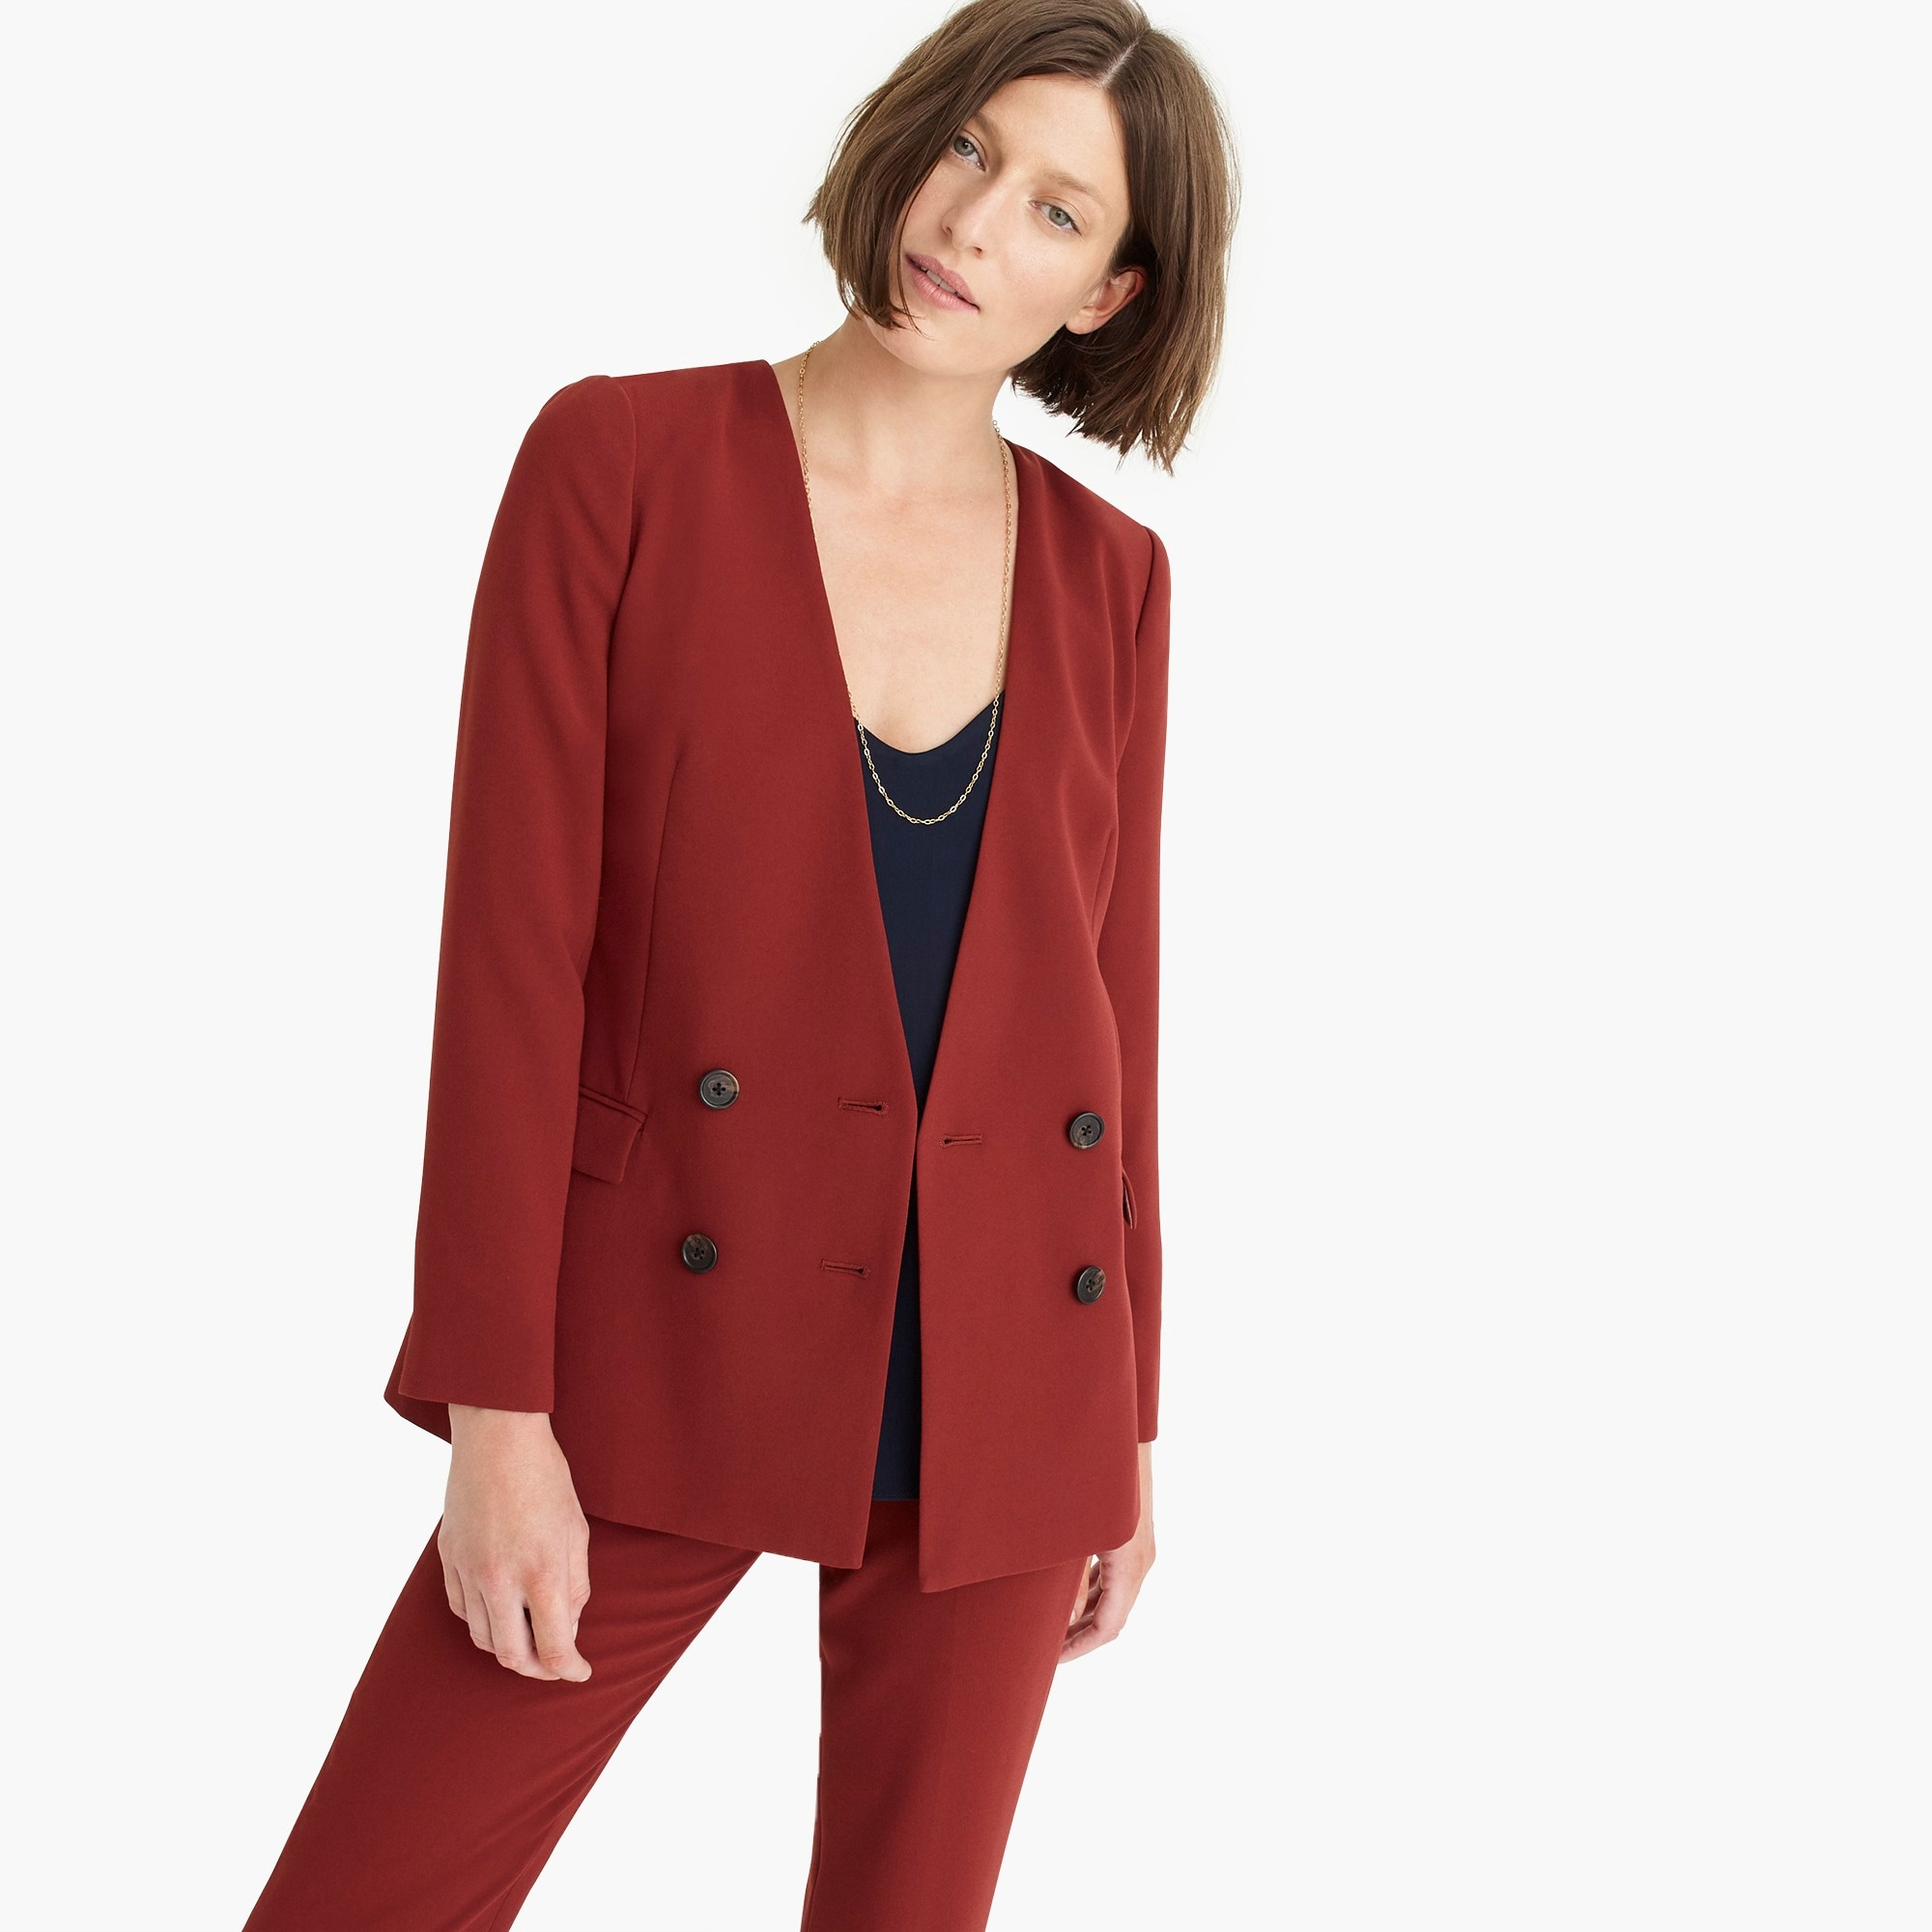 Image 1 for French girl blazer in 365 crepe